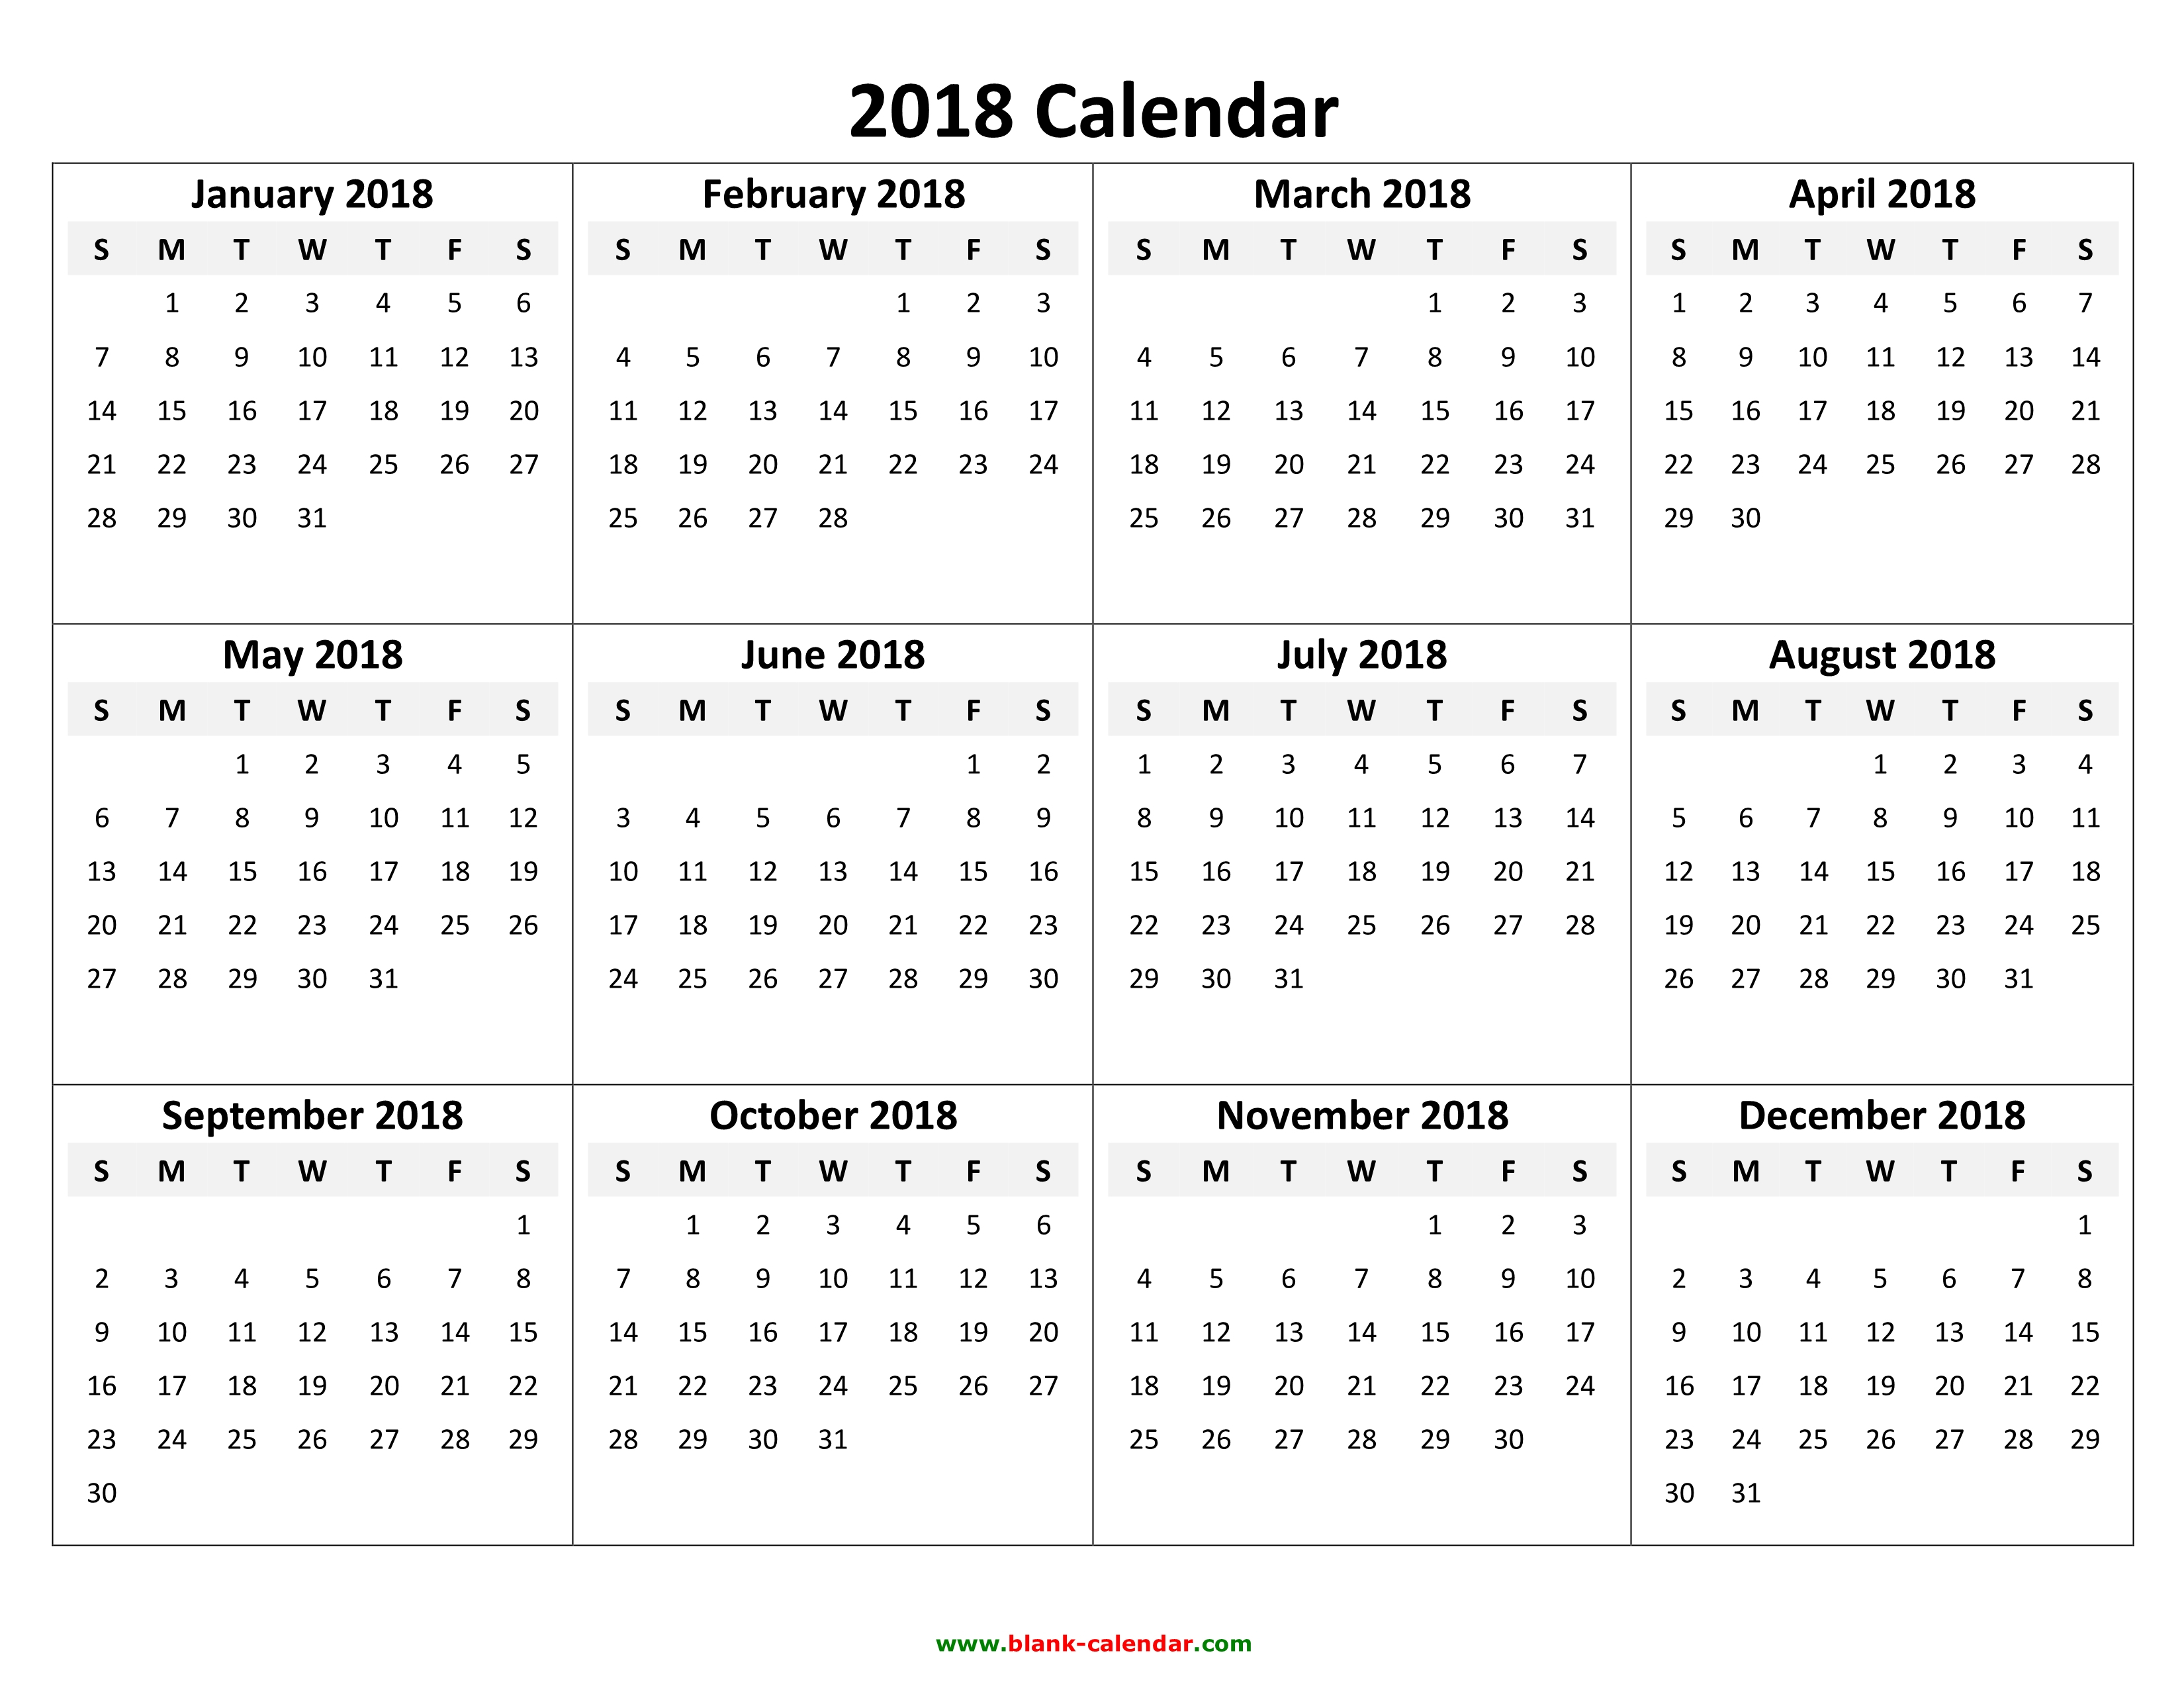 2018 Yearly Calendar - Free Download